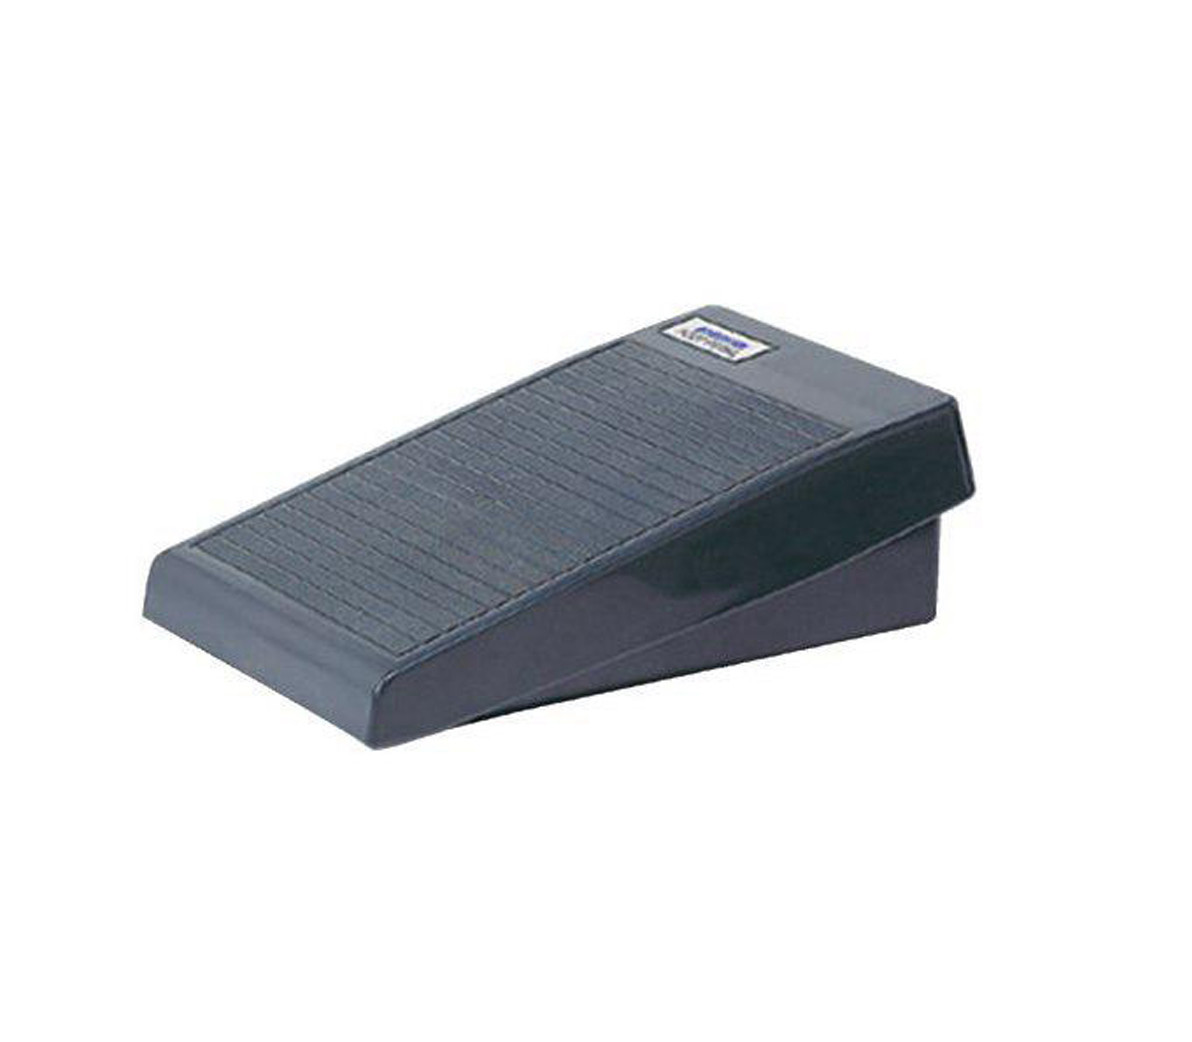 Marathon Foot Pedal (only) for Handy 700